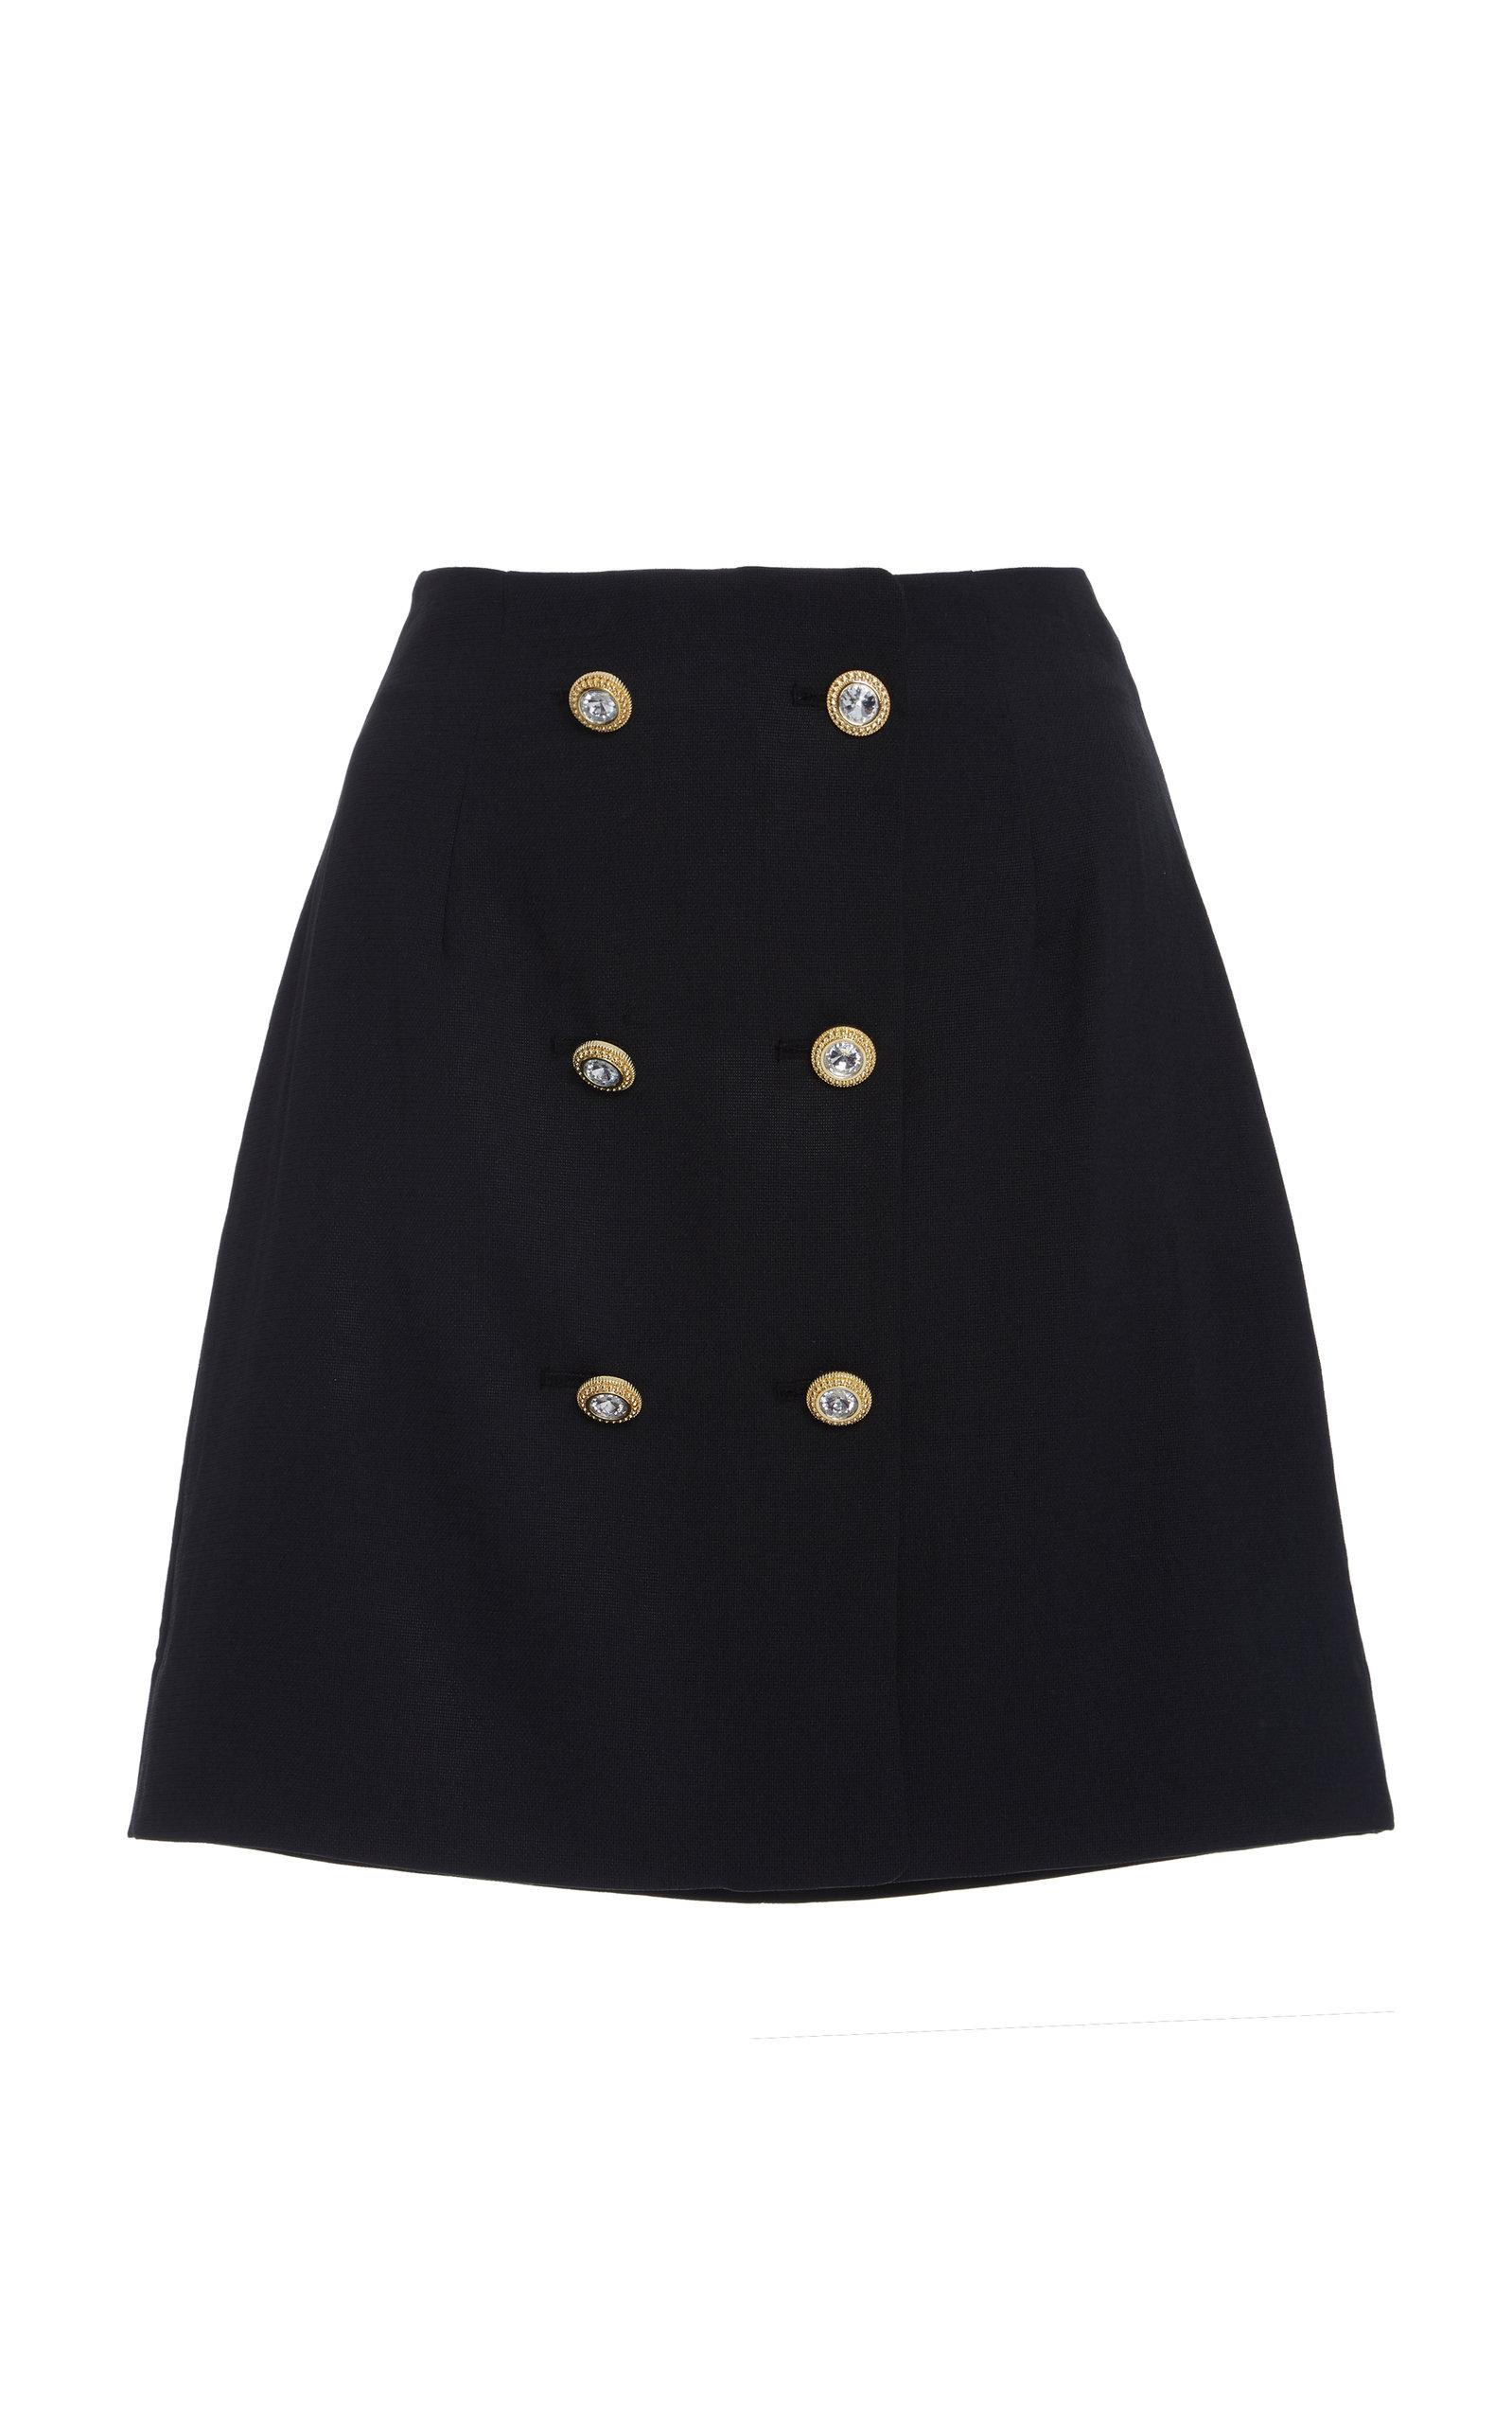 Alice Mccall Who's This? Skirt In Black